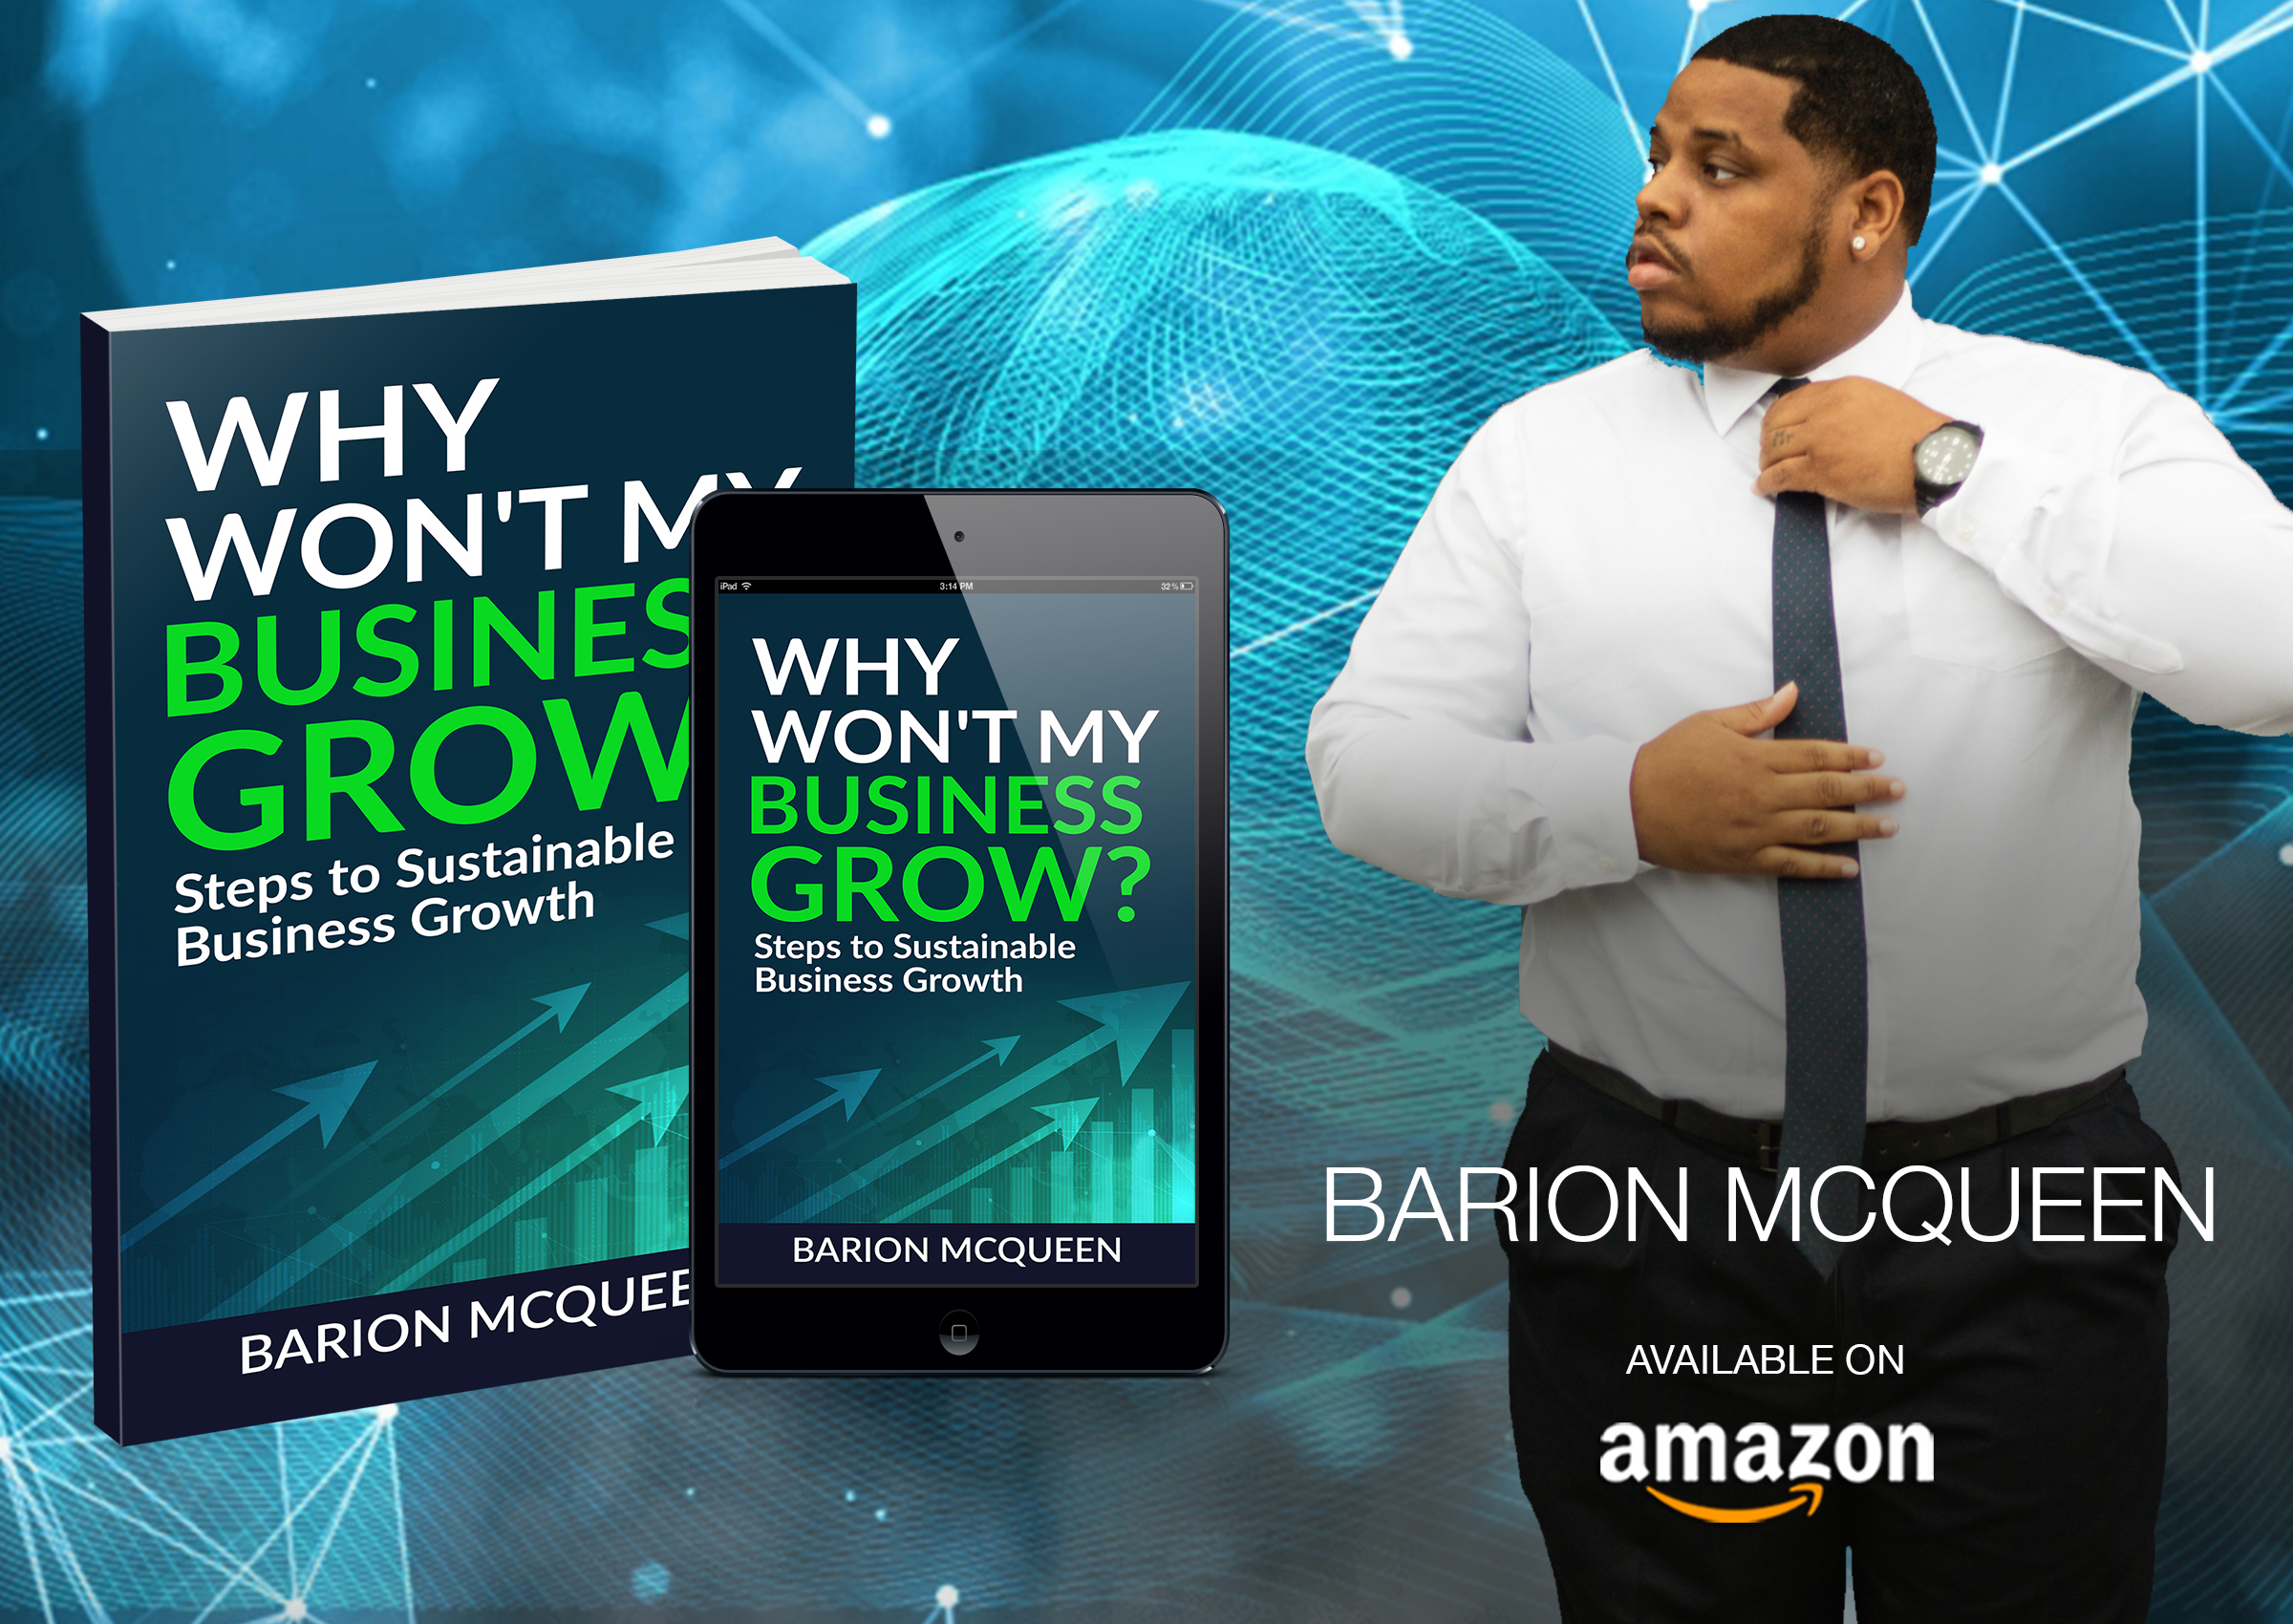 """Marketing Expert & Business Consultant Barion McQueen Releases Eye-Opening new Book """"Why Won't My Business Grow?"""""""